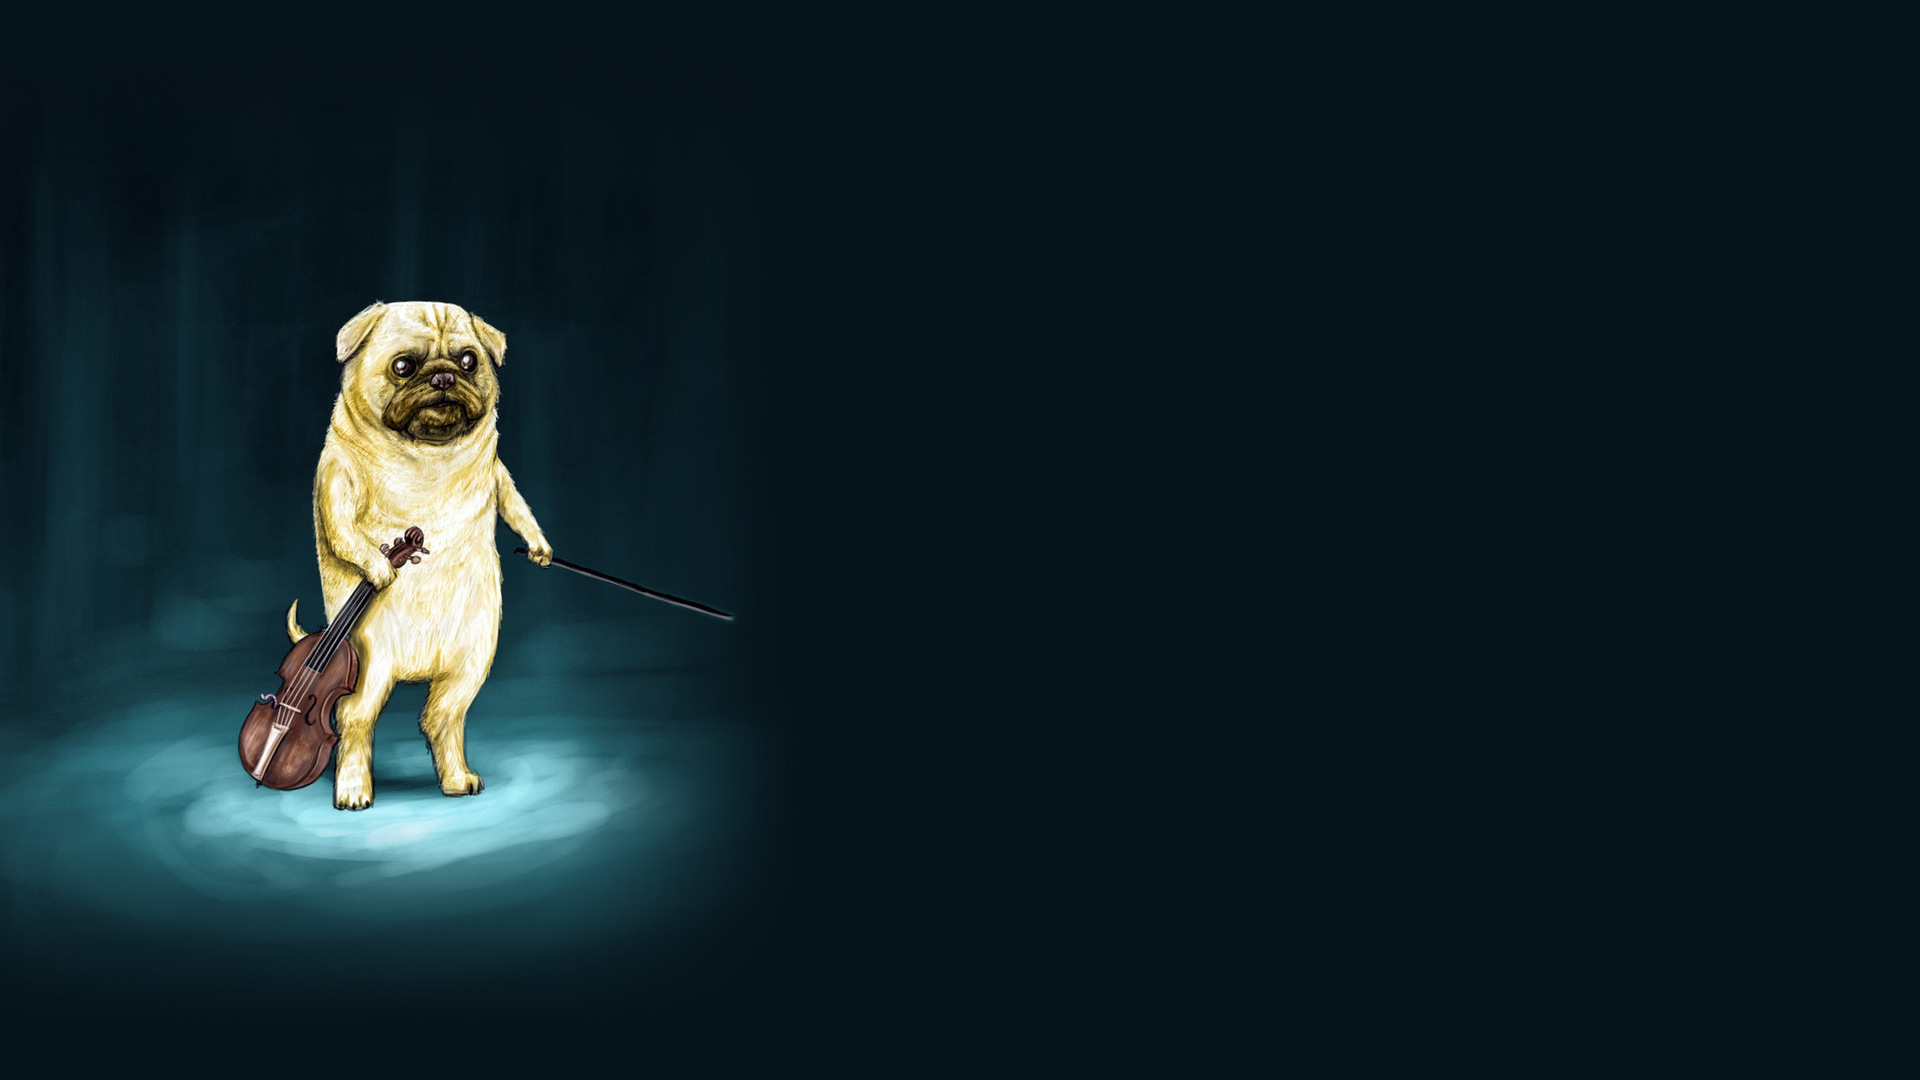 Dog Violin Drawing Wtf Dogs Humor Funny Music Wallpaper 1920x1080